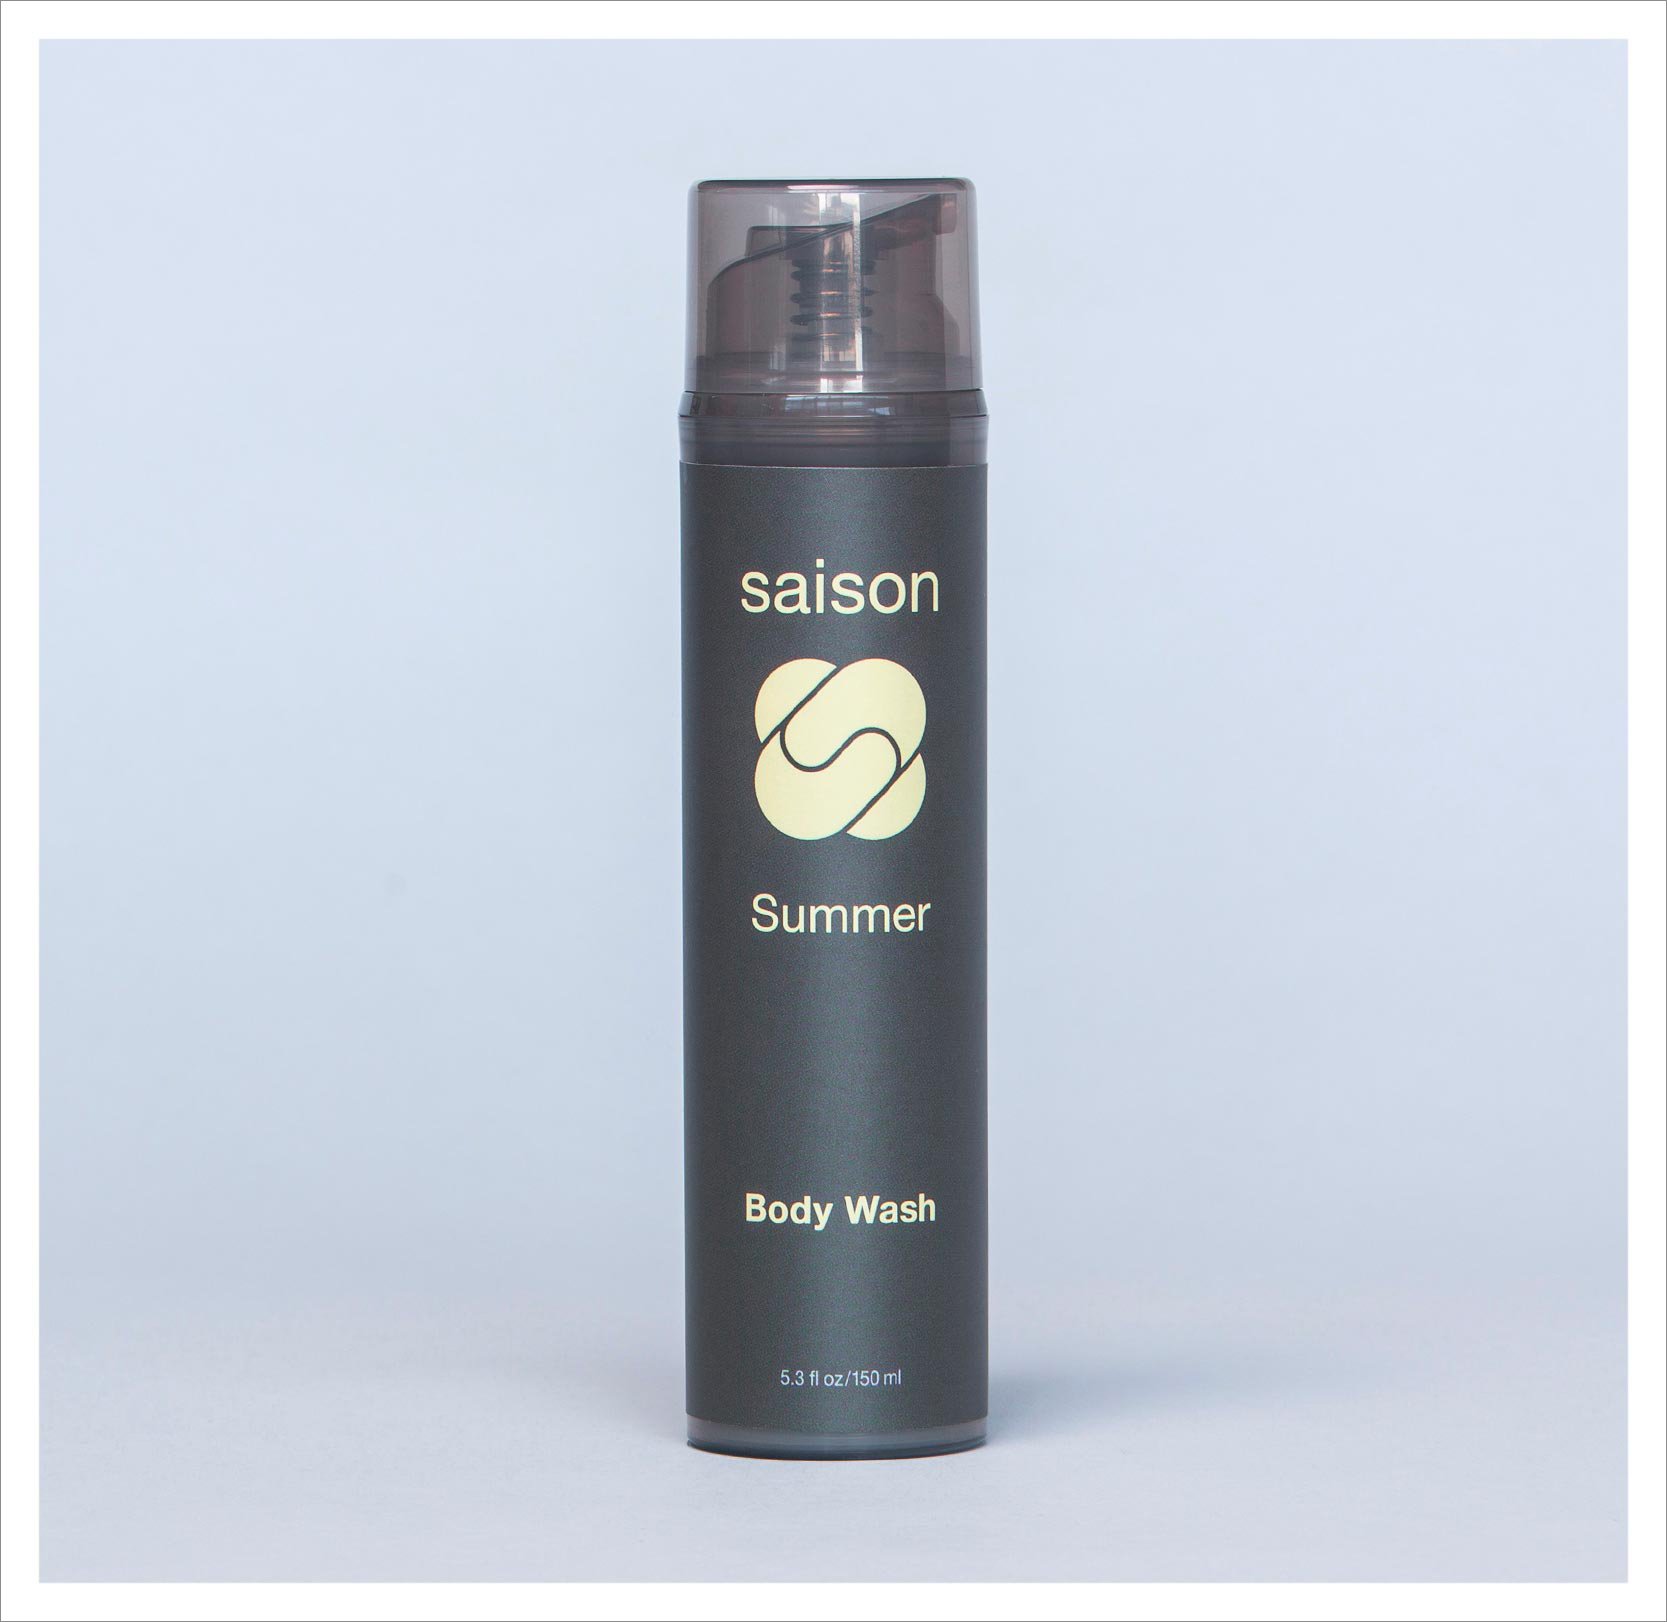 Saison Summer Body Wash